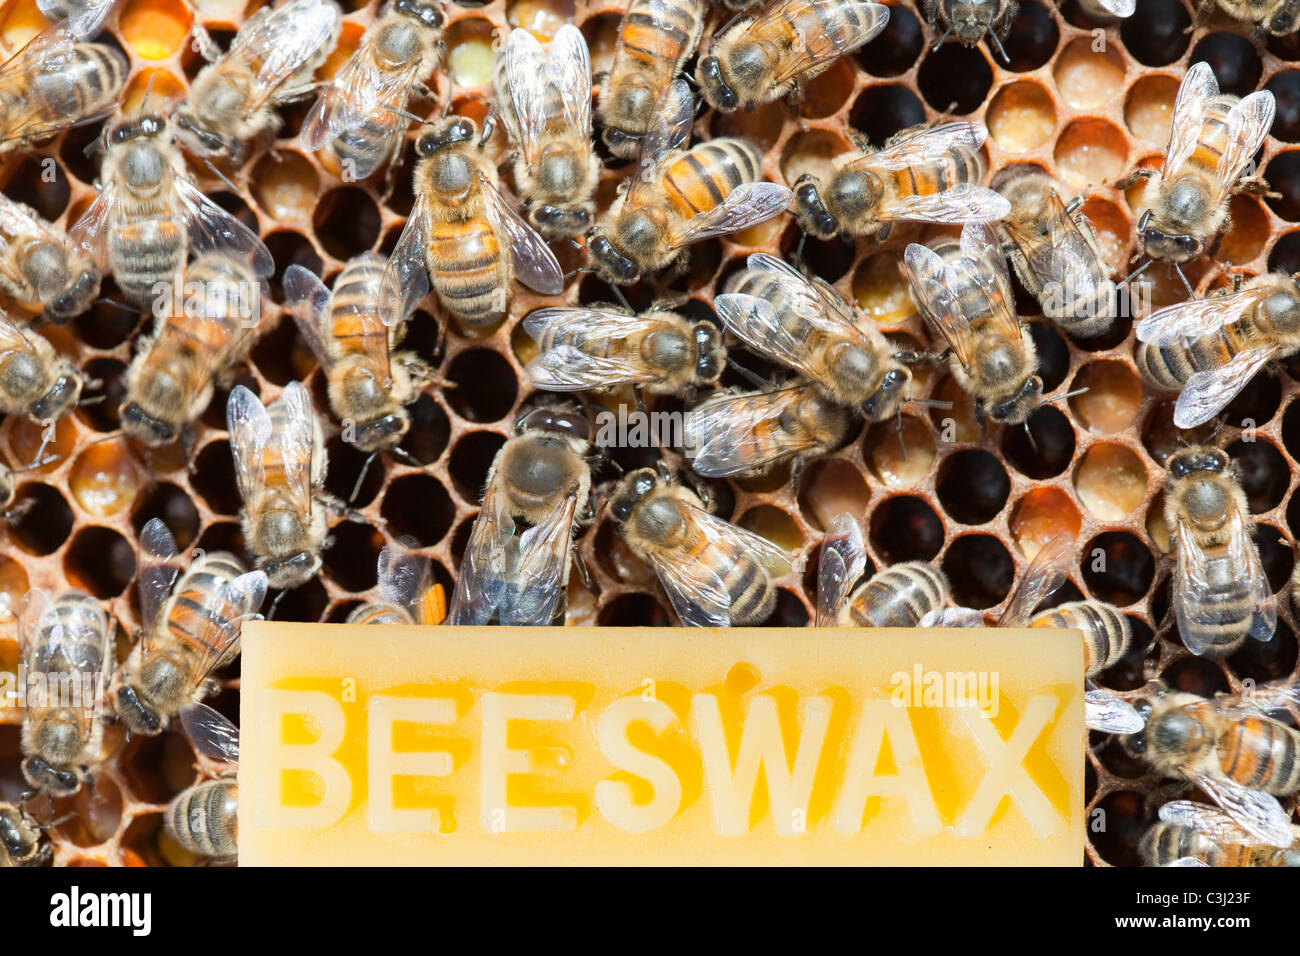 Bees and beeswax - Stock Image